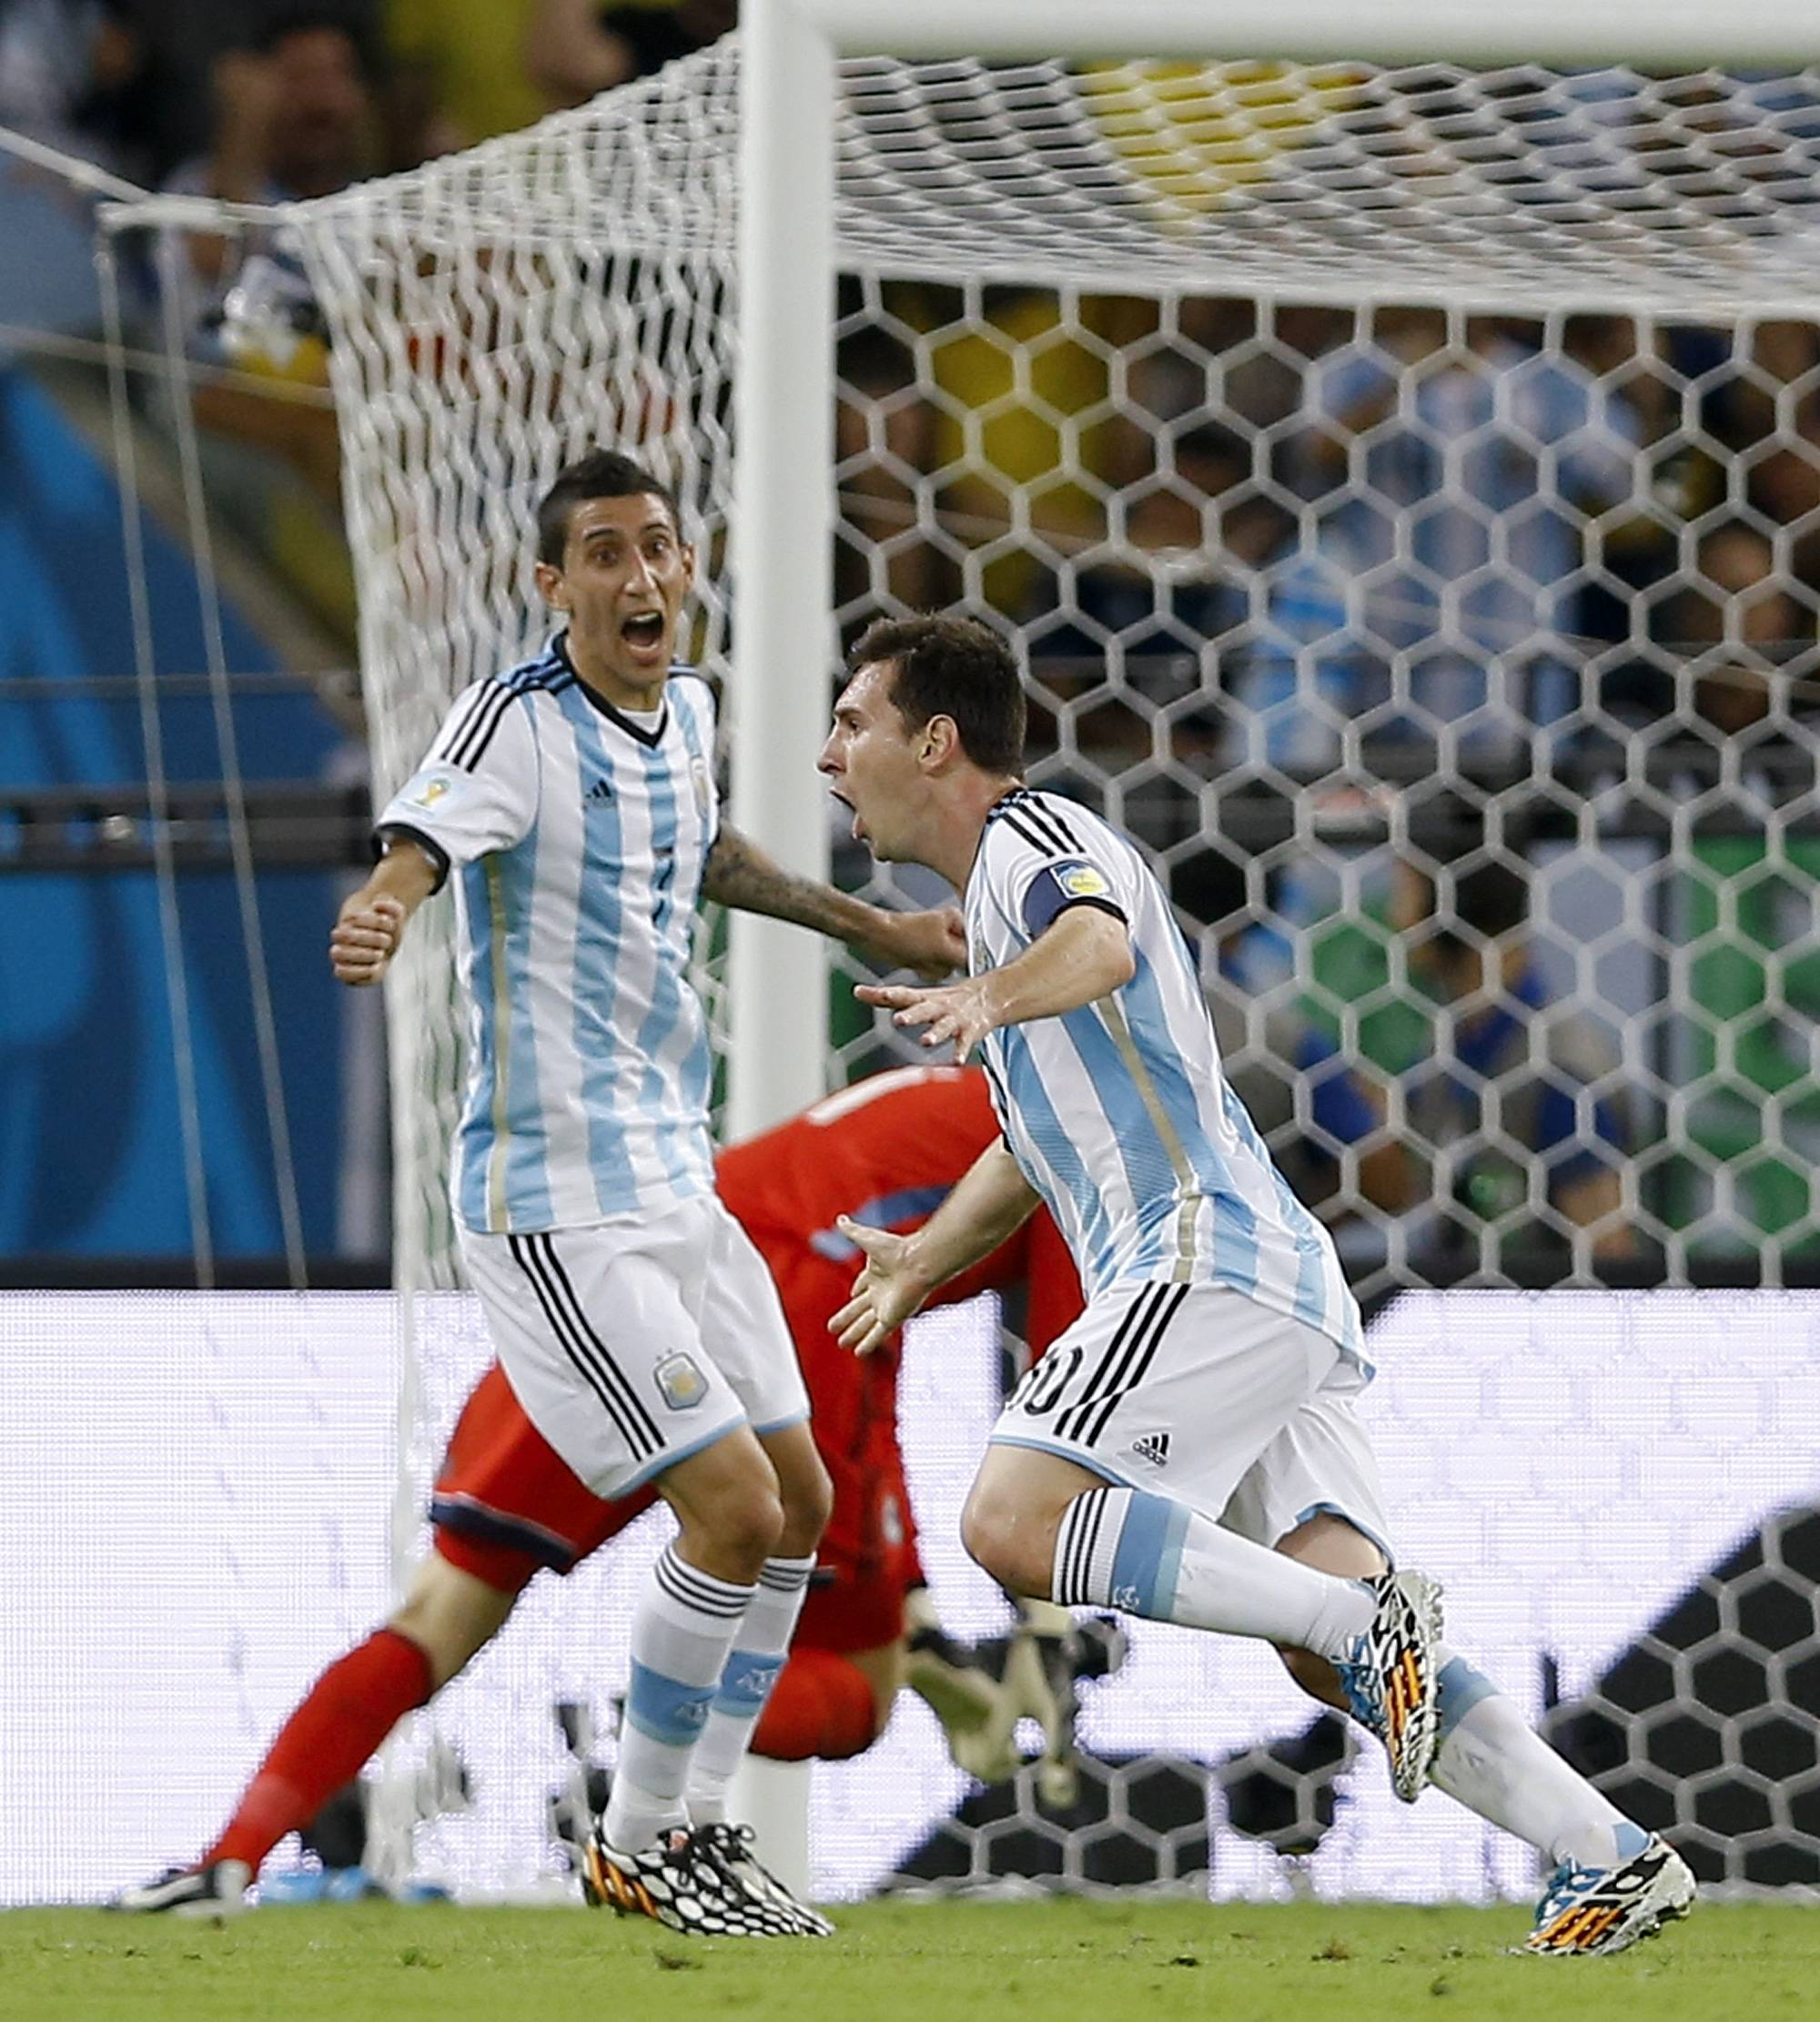 Argentina's Lionel Messi, right, celebrates with Argentina's Angel di Maria, left, after Messi scored his side's second goal during a group F World Cup soccer match between Argentina and Bosnia at the Maracana Stadium in Rio de Janeiro, Brazil, Sunday, June 15, 2014.